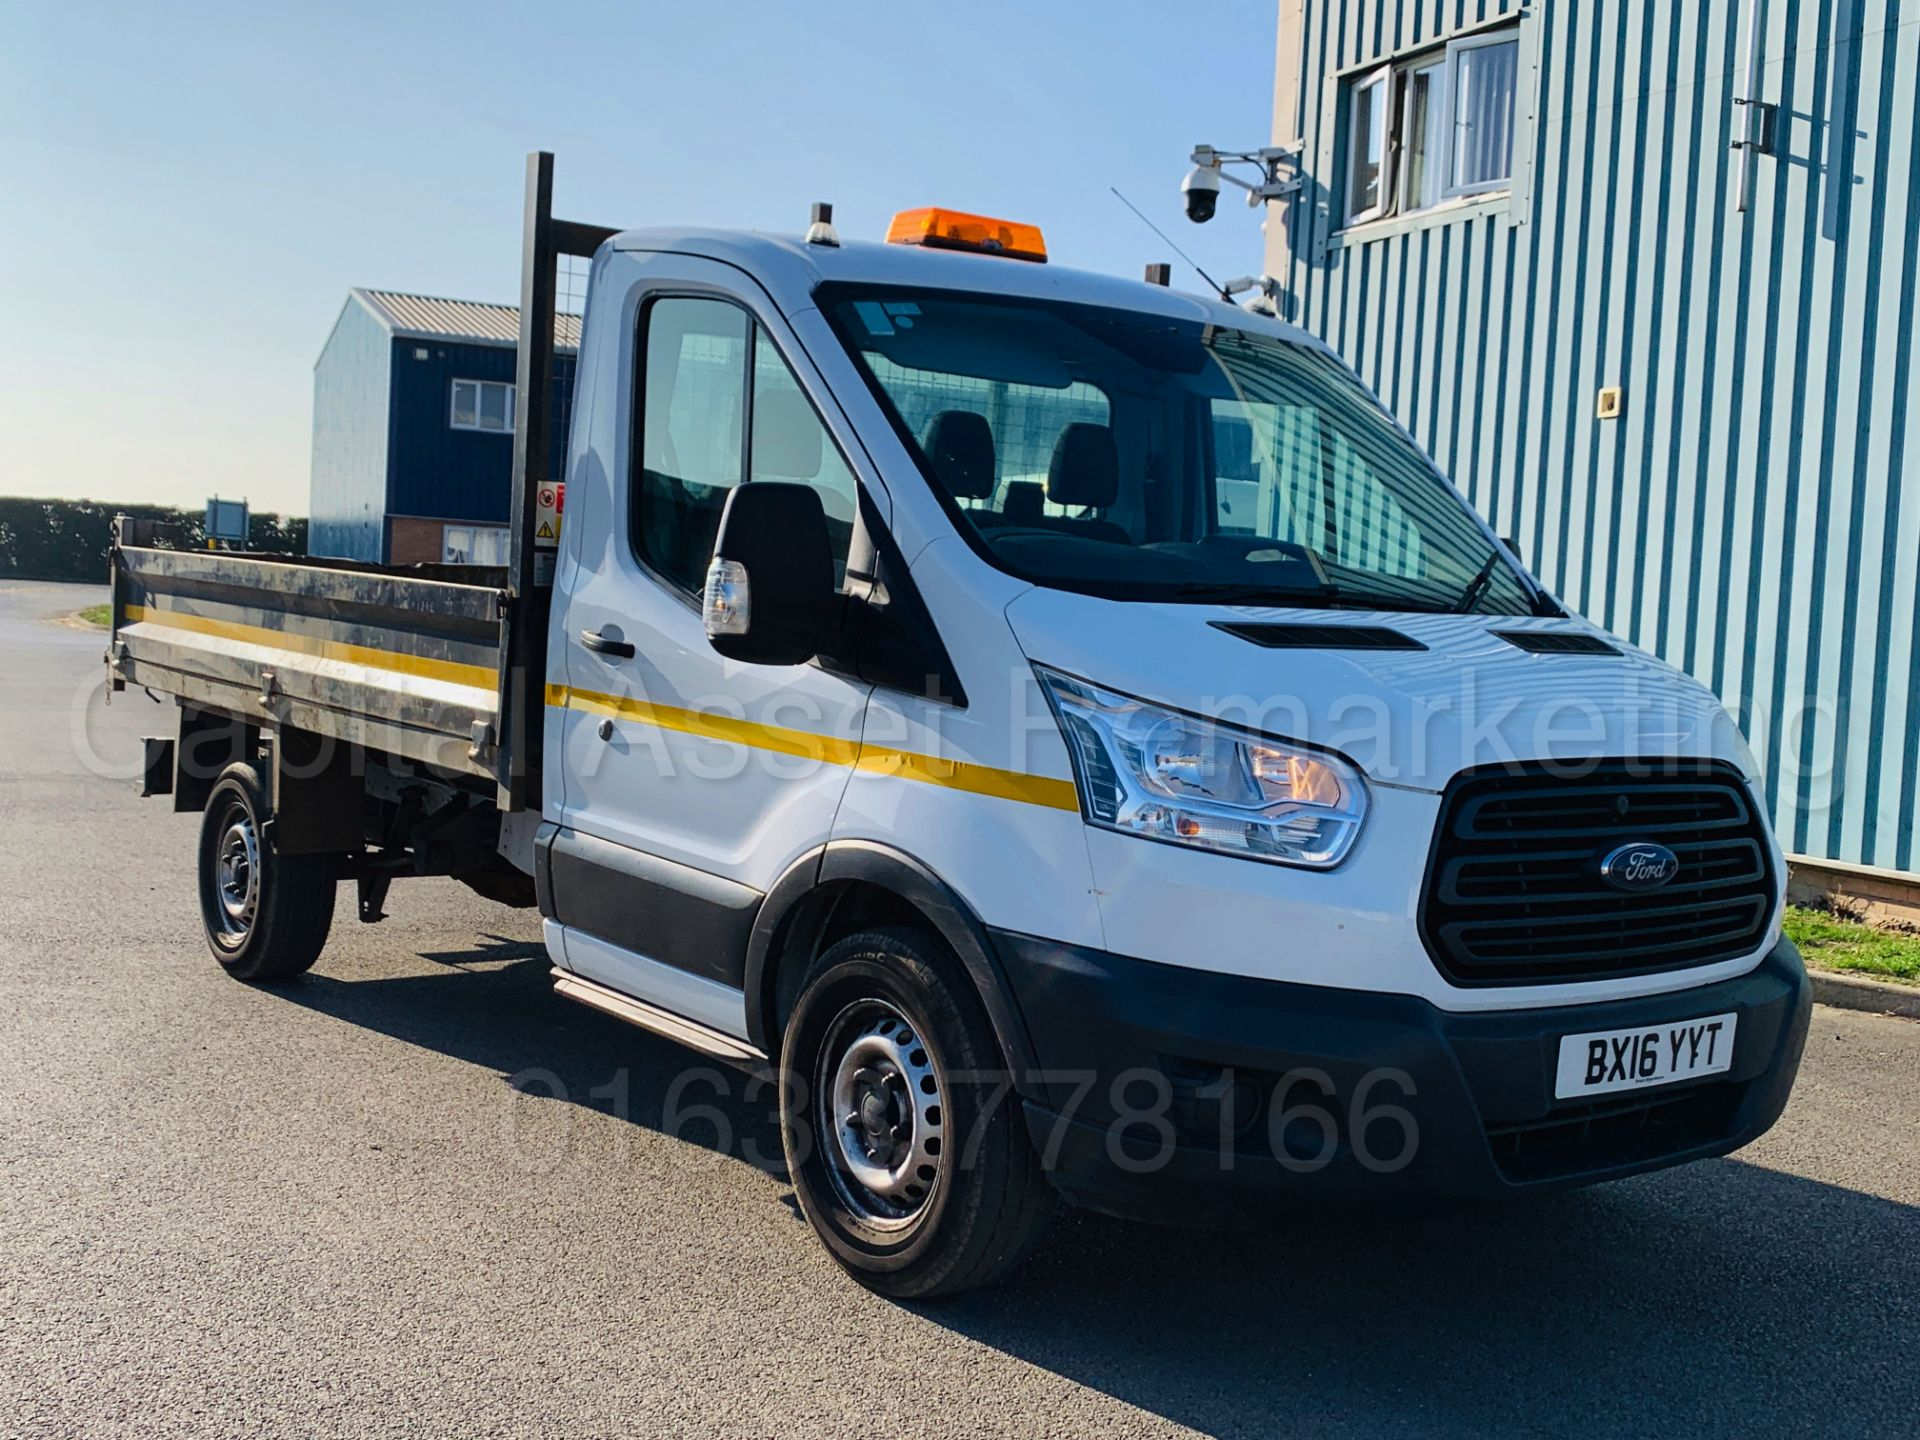 Lot 7 - FORD TRANSIT 125 T350 *SINGLE CAB - TIPPER* (2016) '2.2 TDCI - 125 BHP - 6 SPEED' **3500 KG**